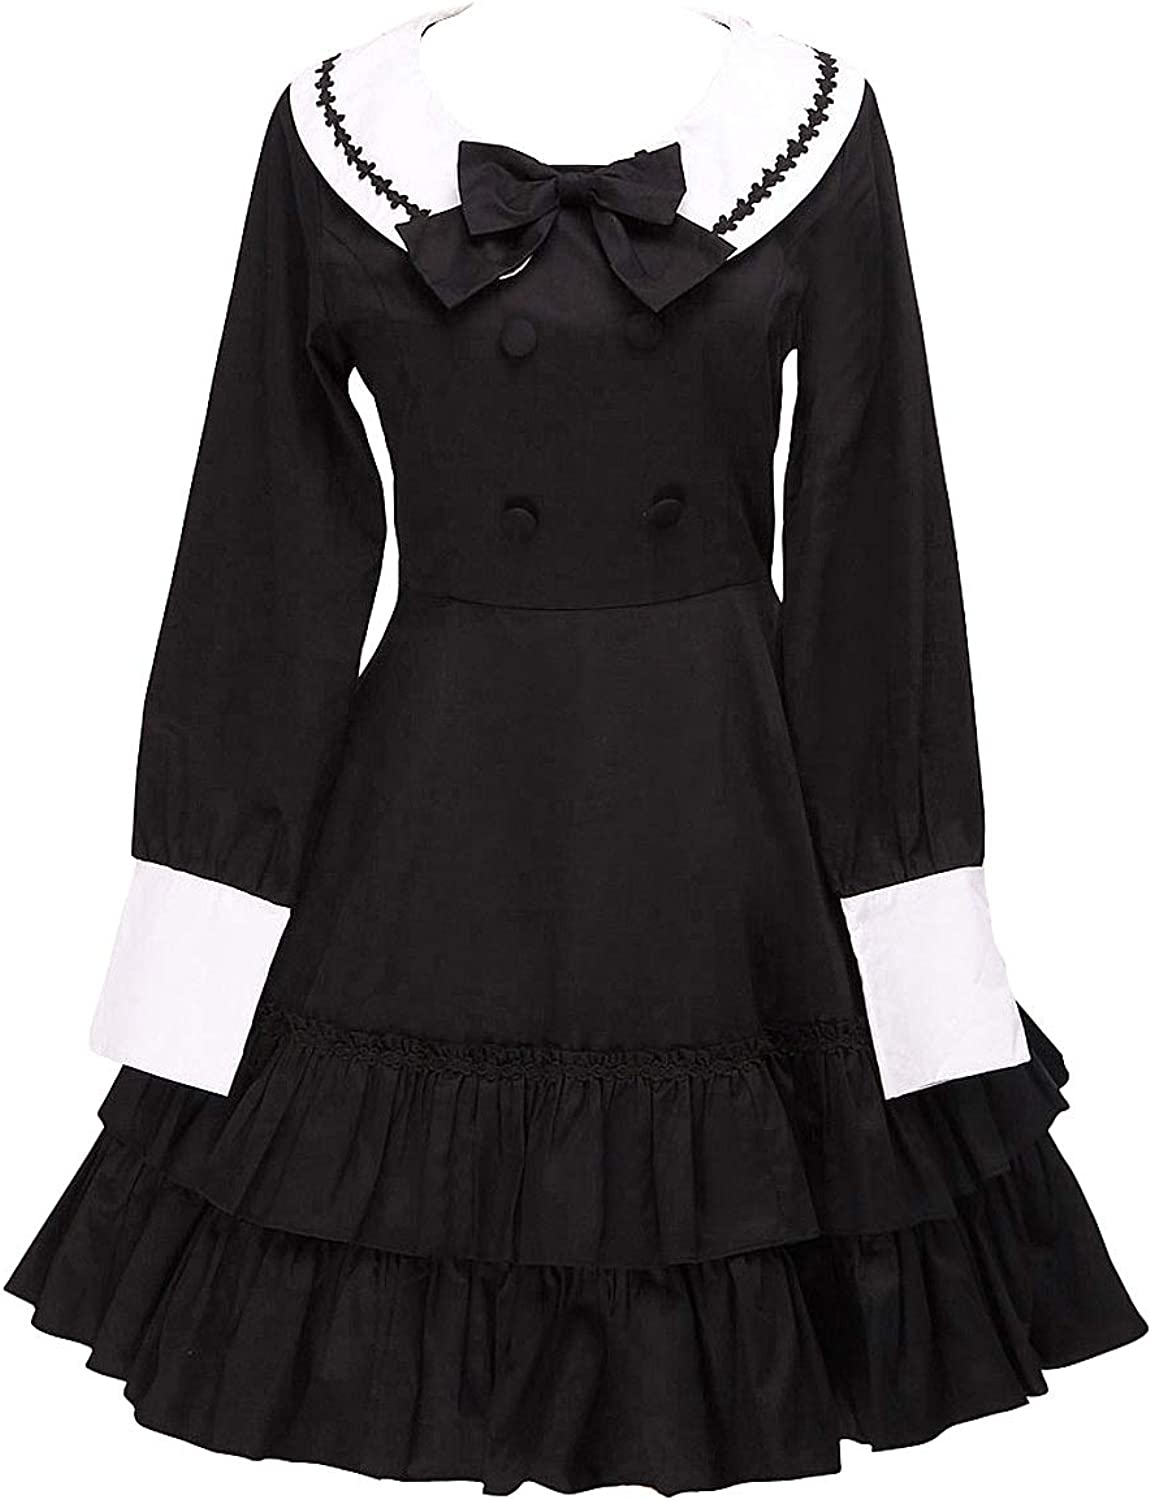 Antaina Black Cotton Ruffle Bow Sailor Sweet Student Lolita Cosplay Dress